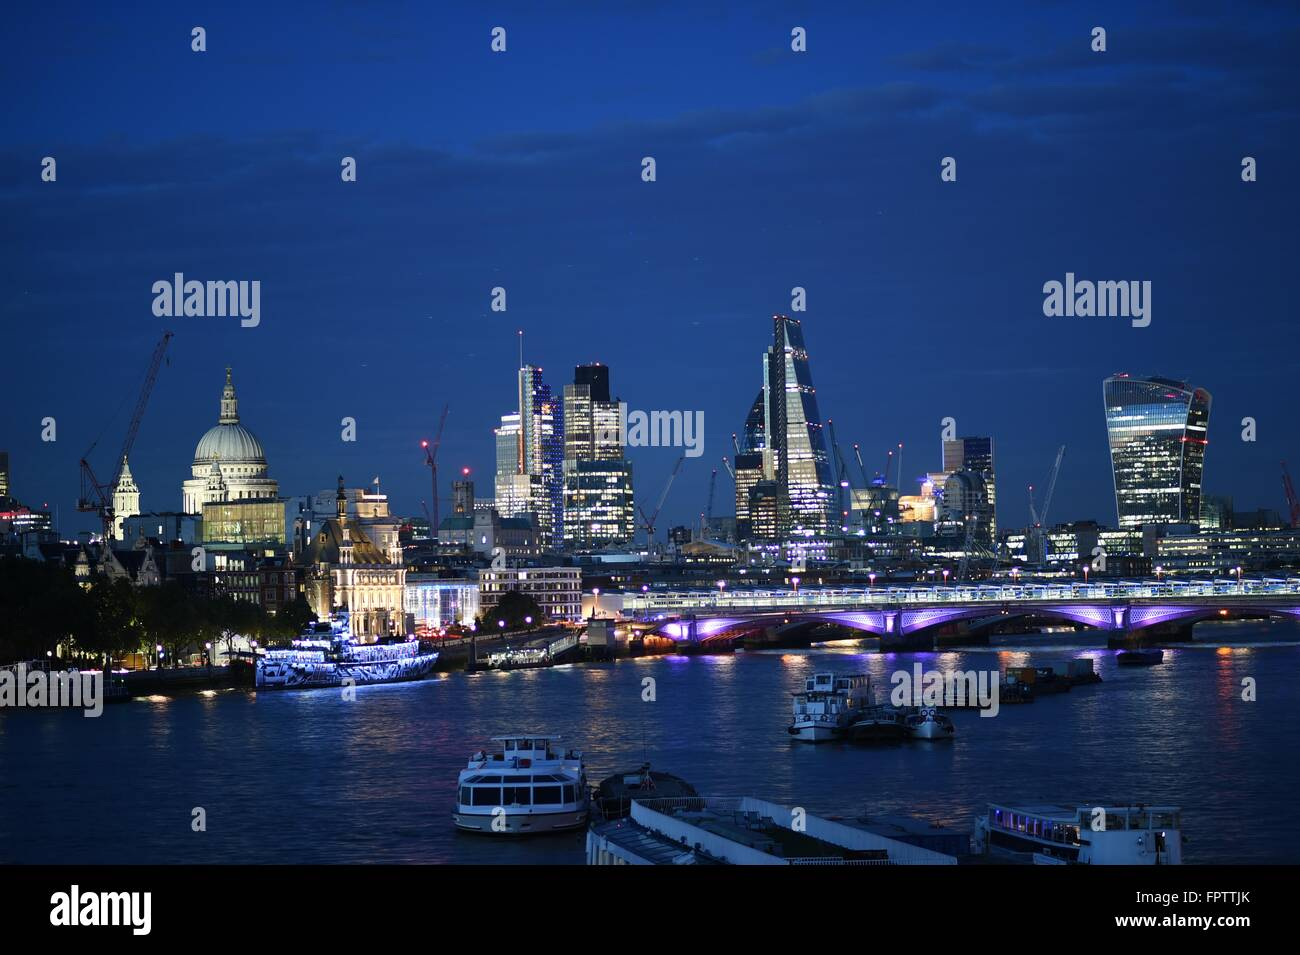 A Night Shot of beautifully lit London City overlooking The River Thames and famous landmarks - Stock Image